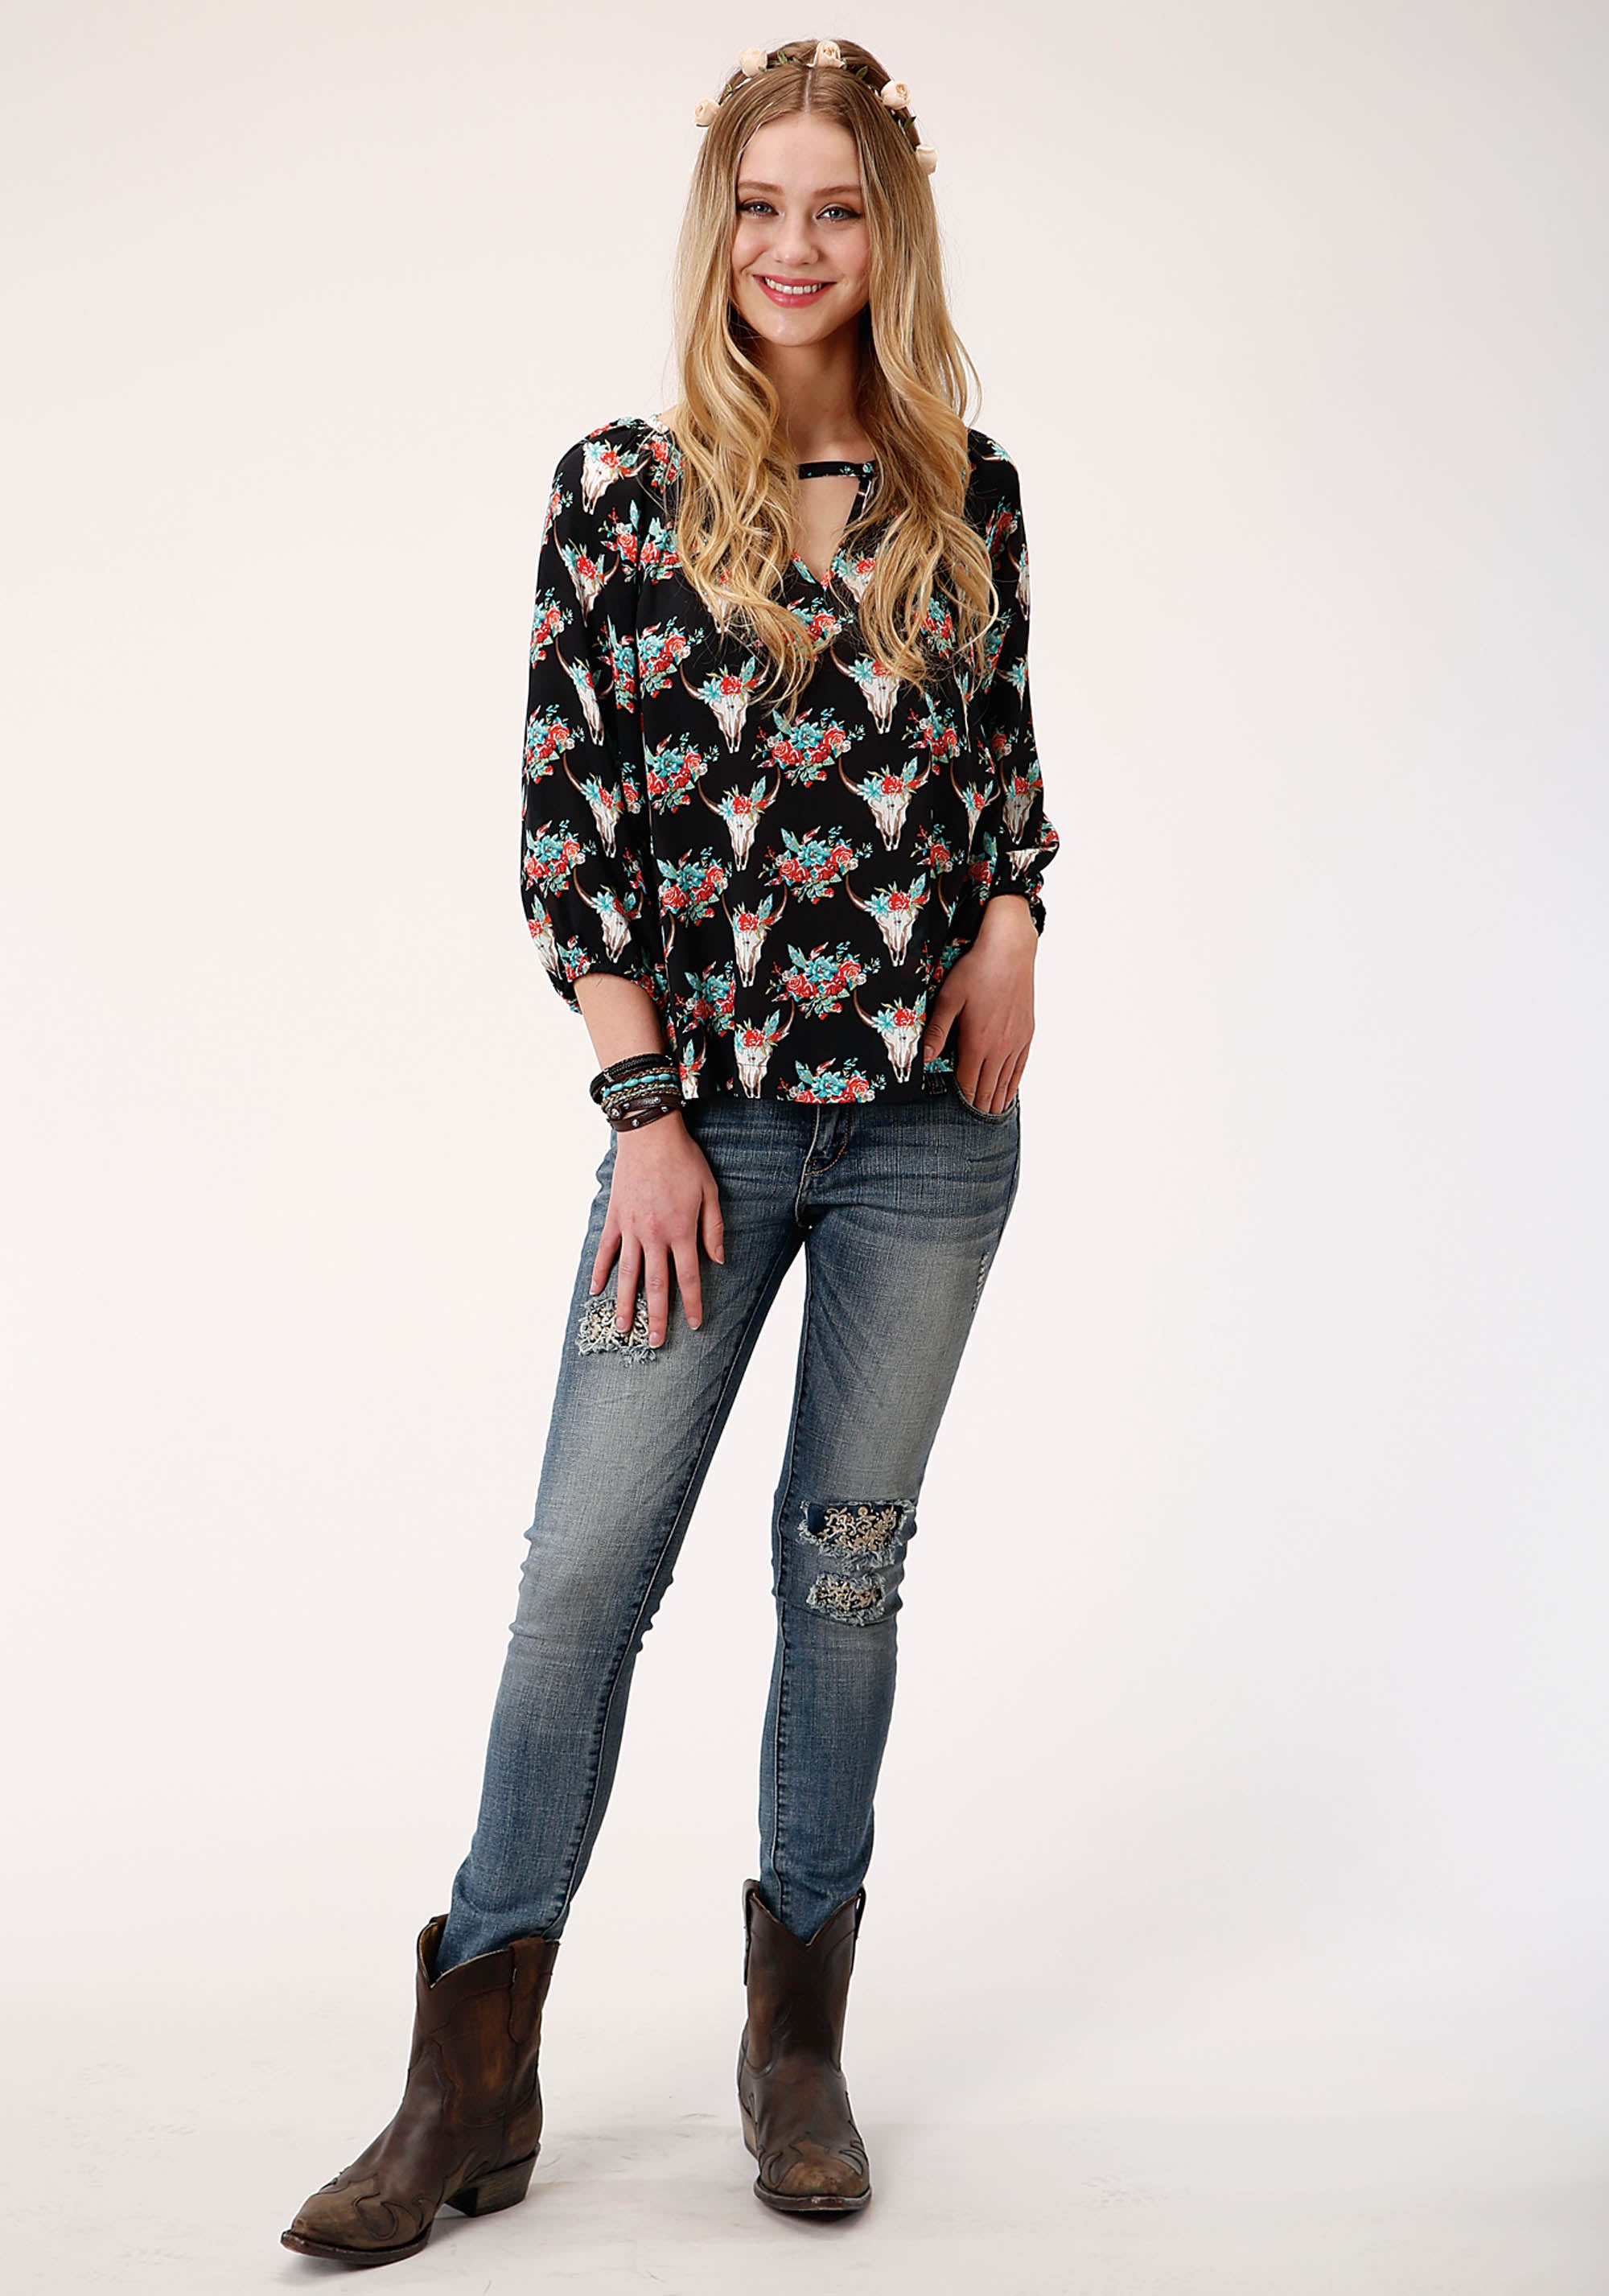 ROPER WOMENS BLACK 00335 FLORAL SKULLS PRT RAYON BLOUSE FIVE STAR COLLECTION- FALL II LONG SLEEVE